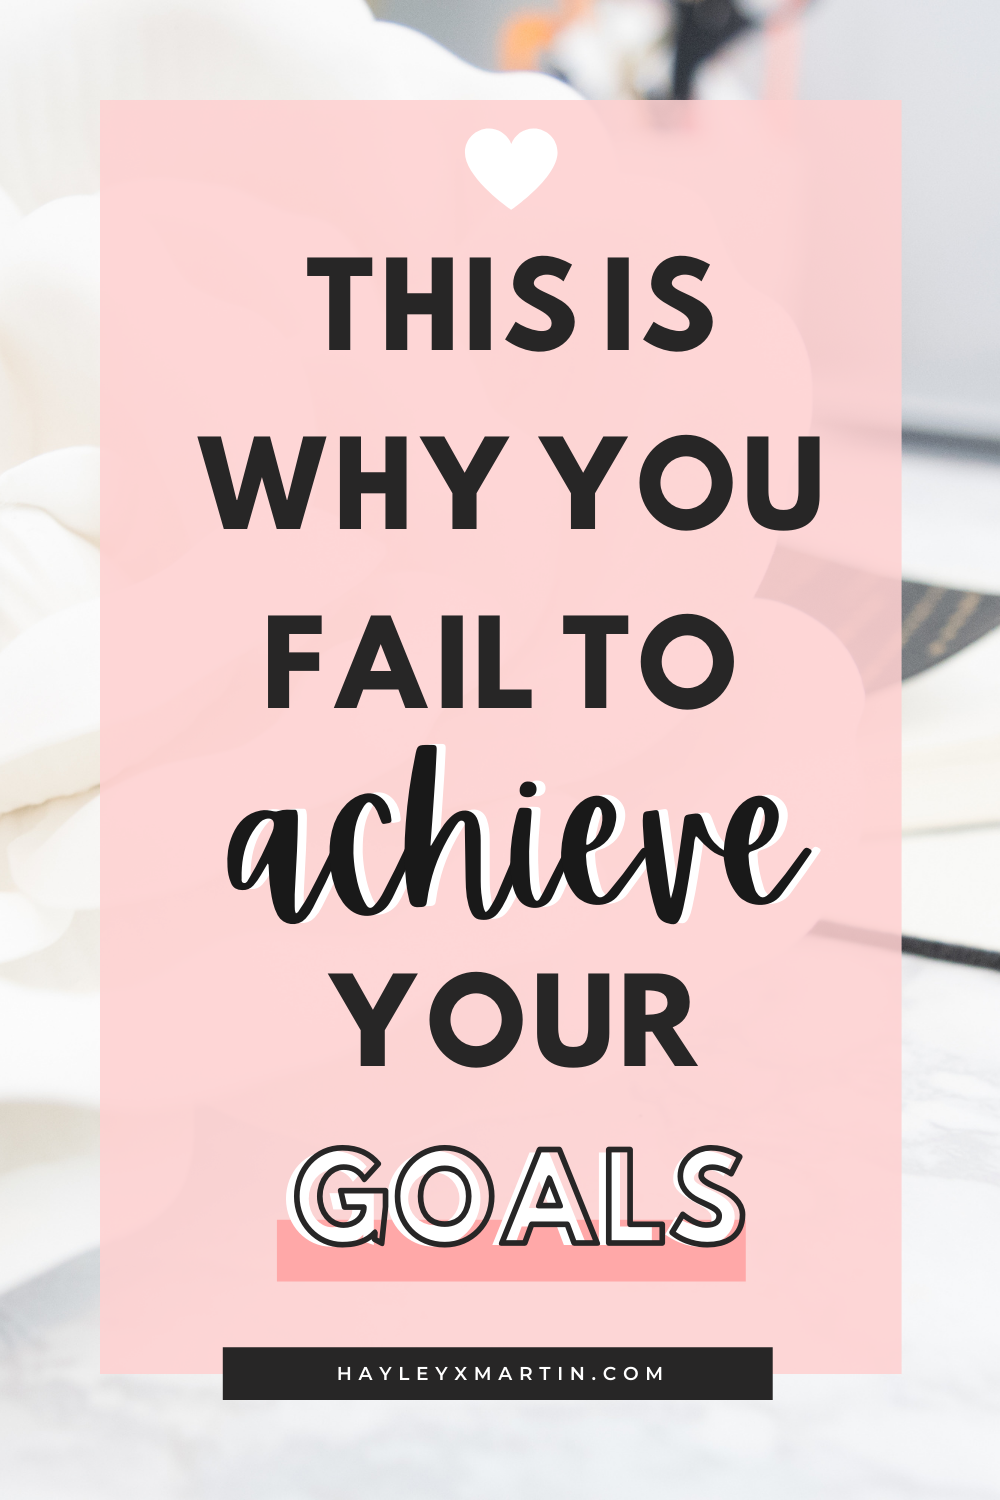 THIS IS WHY YOU FAIL TO ACHIEVE YOUR GOALS | HAYLEYXMARTIN